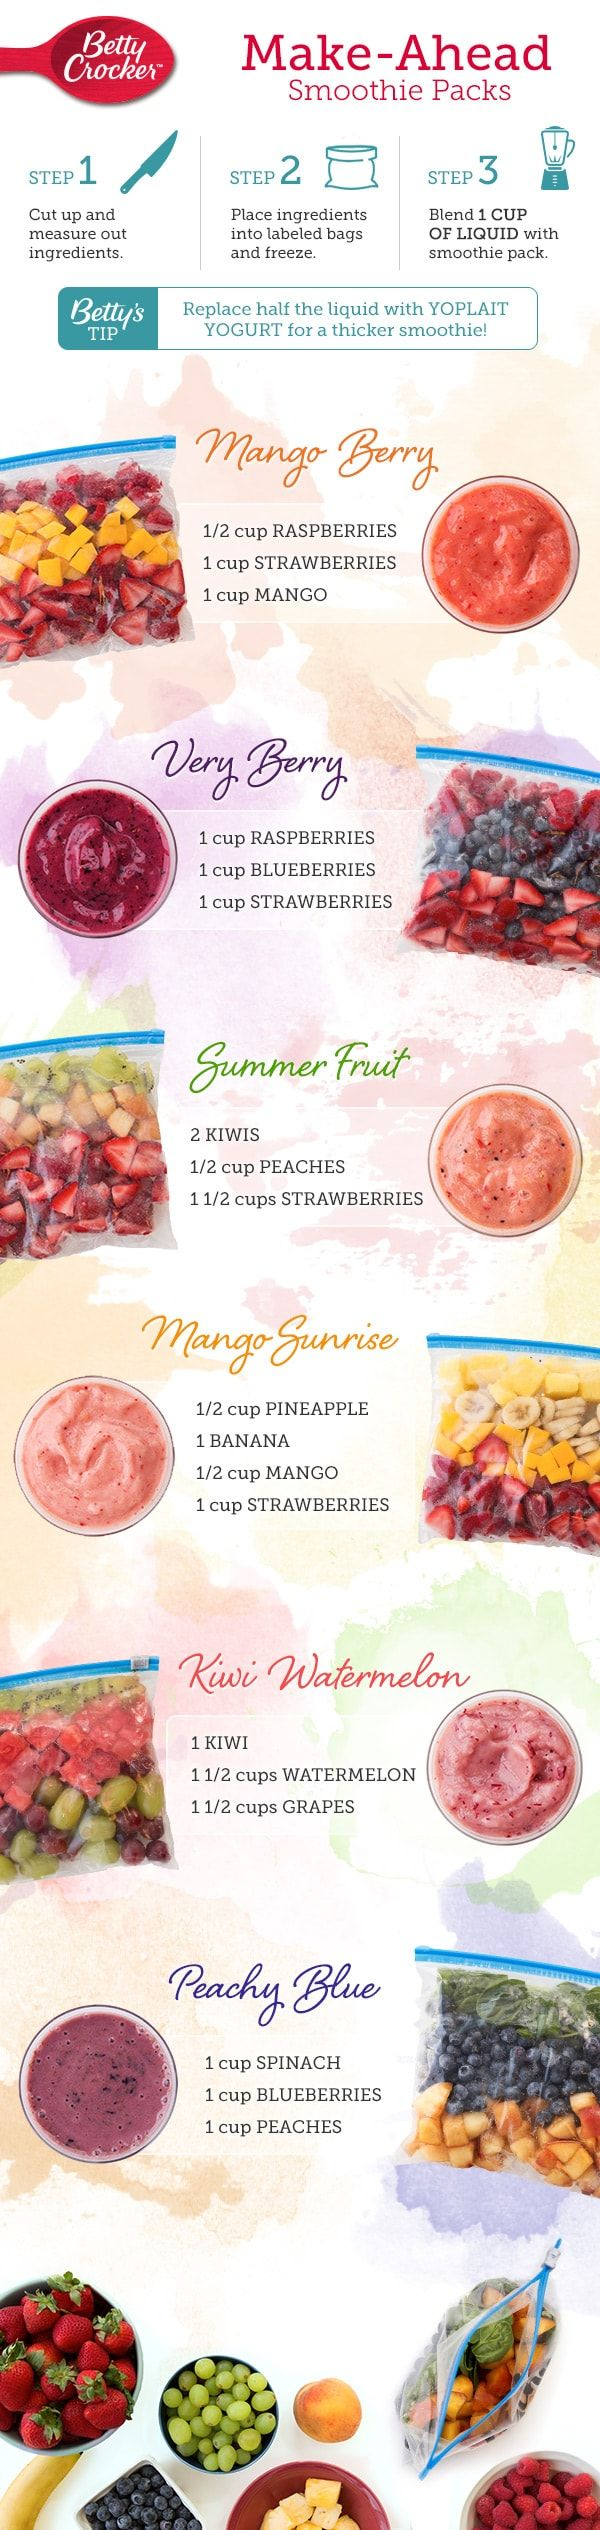 Your morning smoothie is about to get a whole lot quicker and easier. Simply grab a pack, mix and you're done with these 22 make ahead smoothie pack ideas (with recipes)!